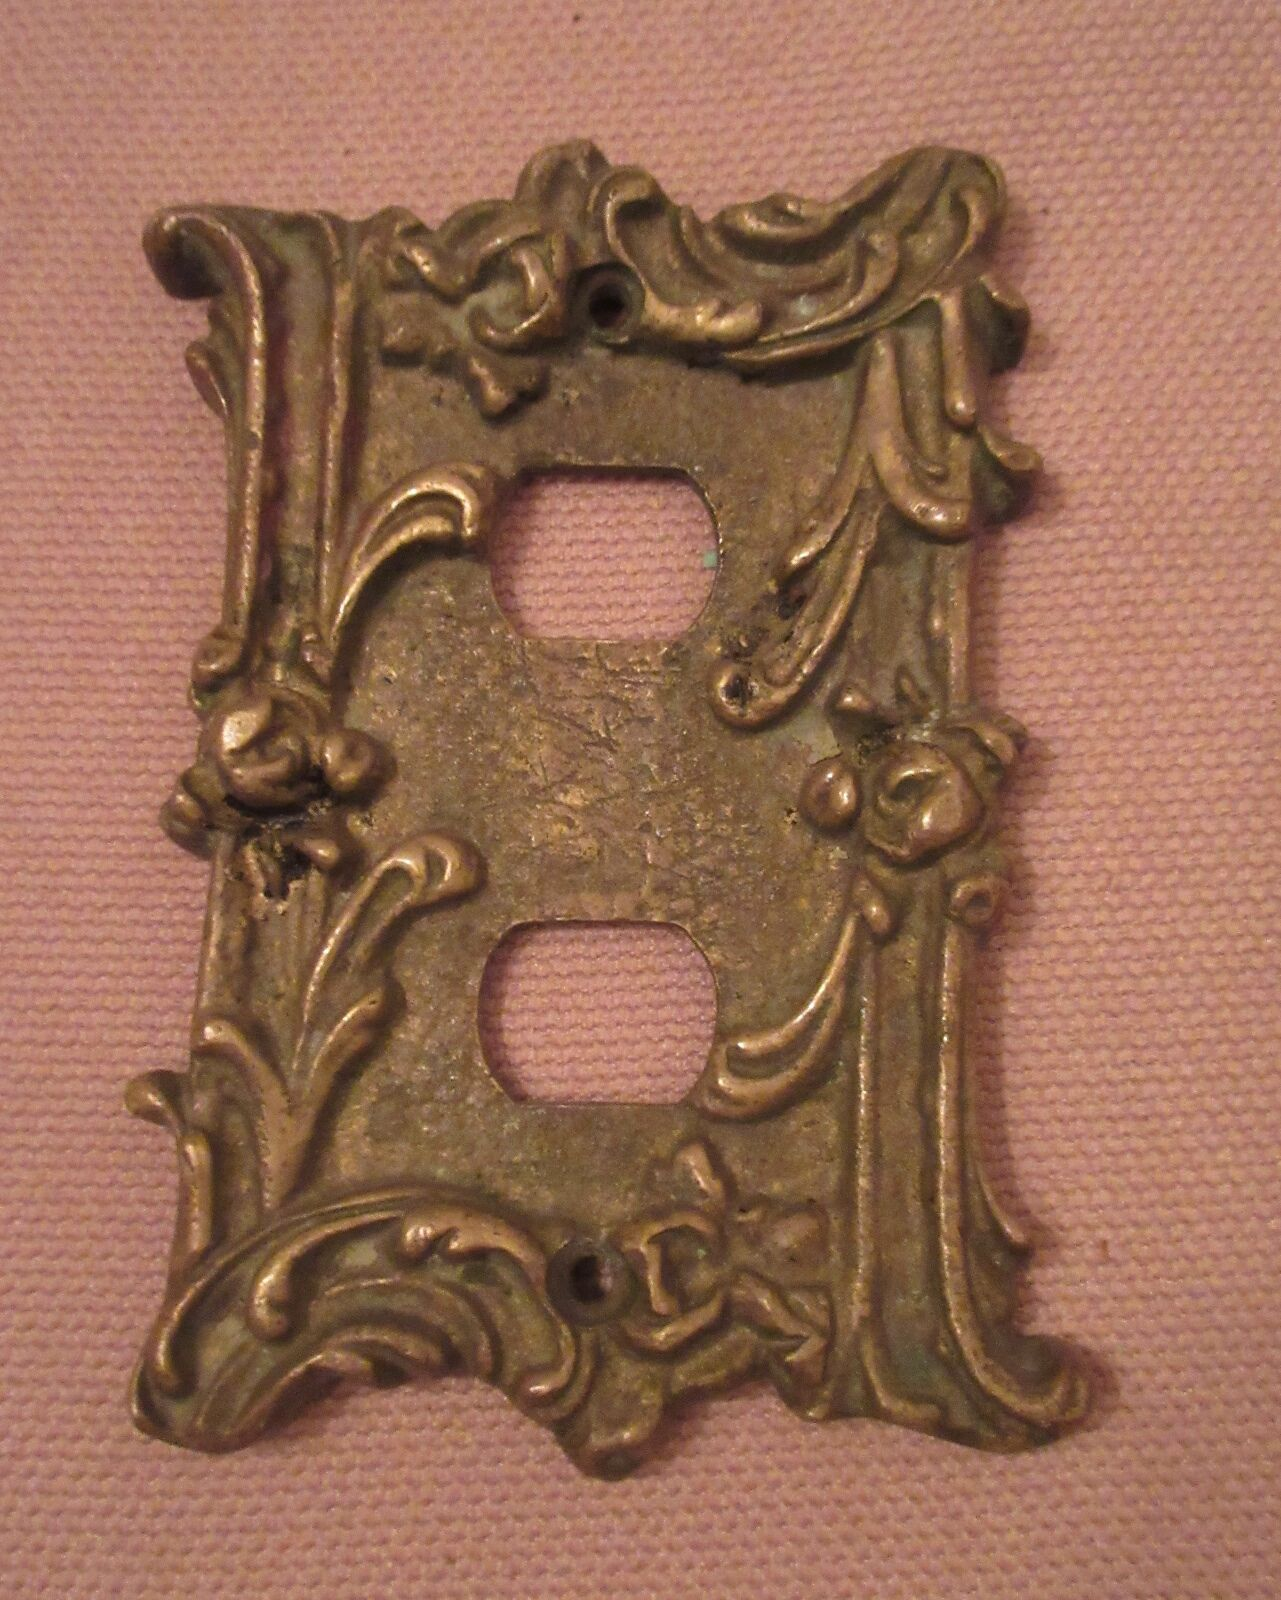 rare antique ornate thick solid brass socket plate electric outlet plug cover